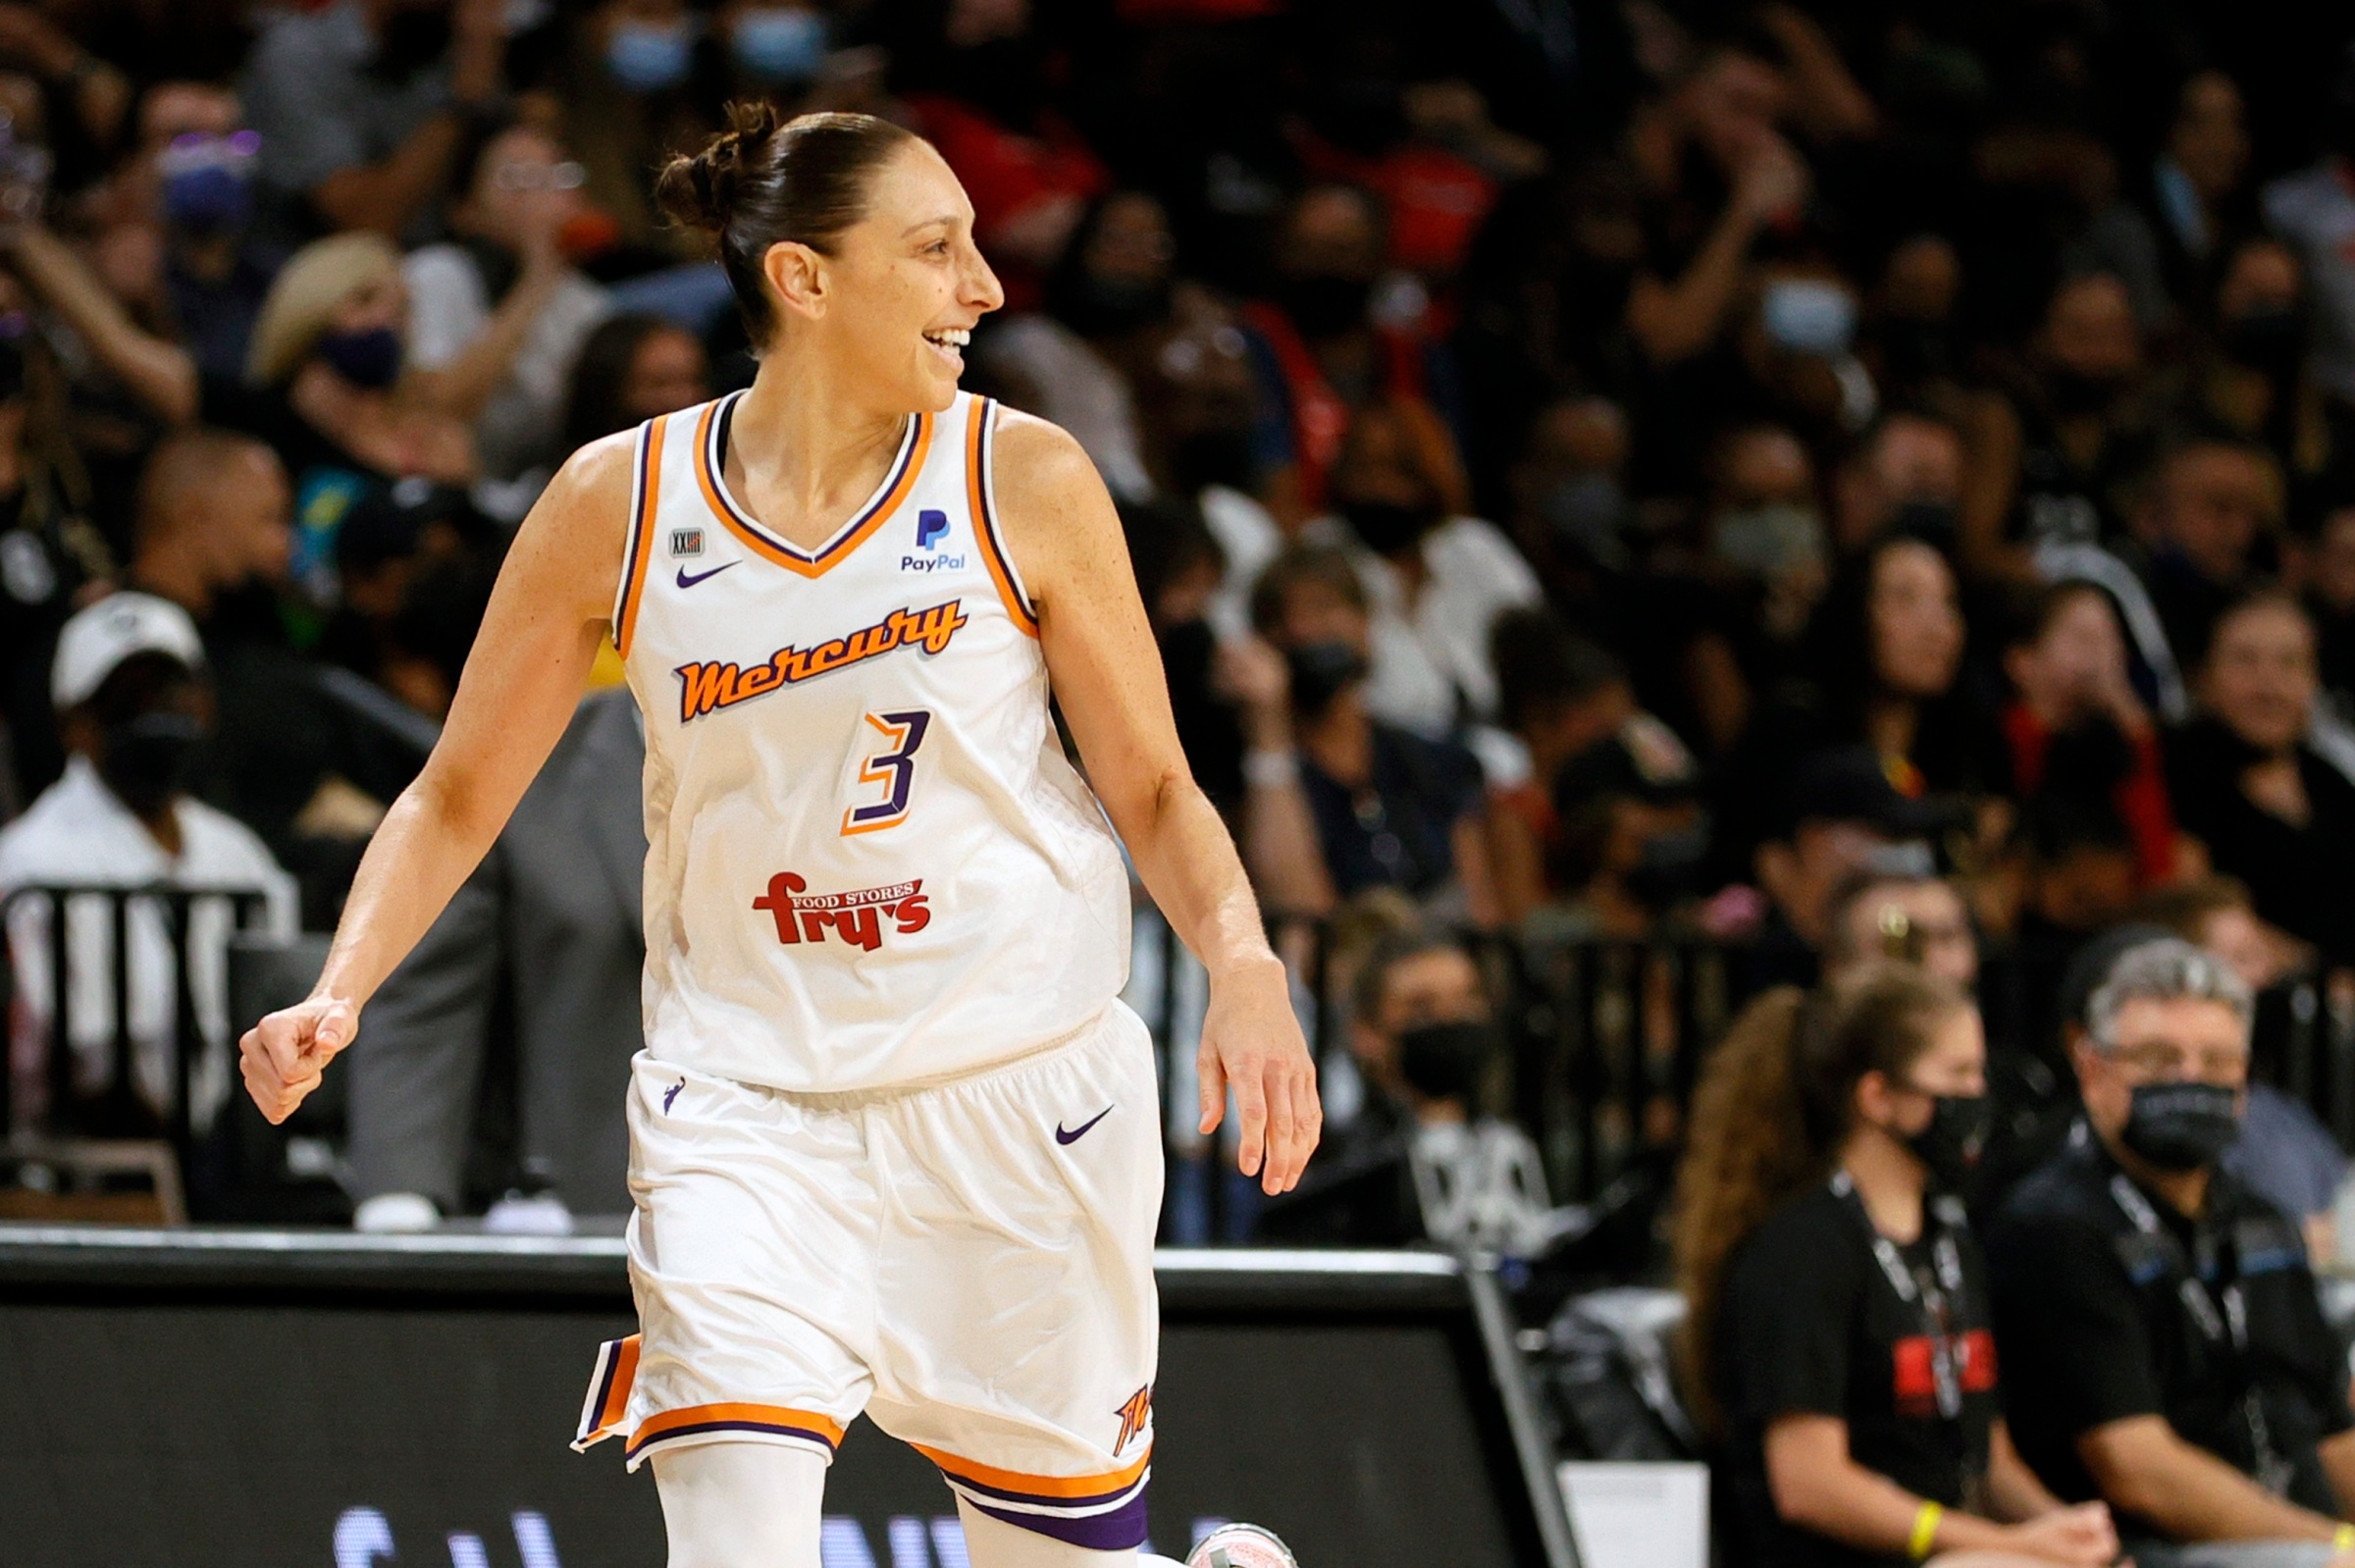 Diana Taurasi #3 of the Phoenix Mercury reacts after hitting a 3-pointer against the Las Vegas Aces during Game Two of the 2021 WNBA Playoffs semifinals at Michelob ULTRA Arena on September 30, 2021 in Las Vegas, Nevada. The Mercury defeated the Aces 117-91.